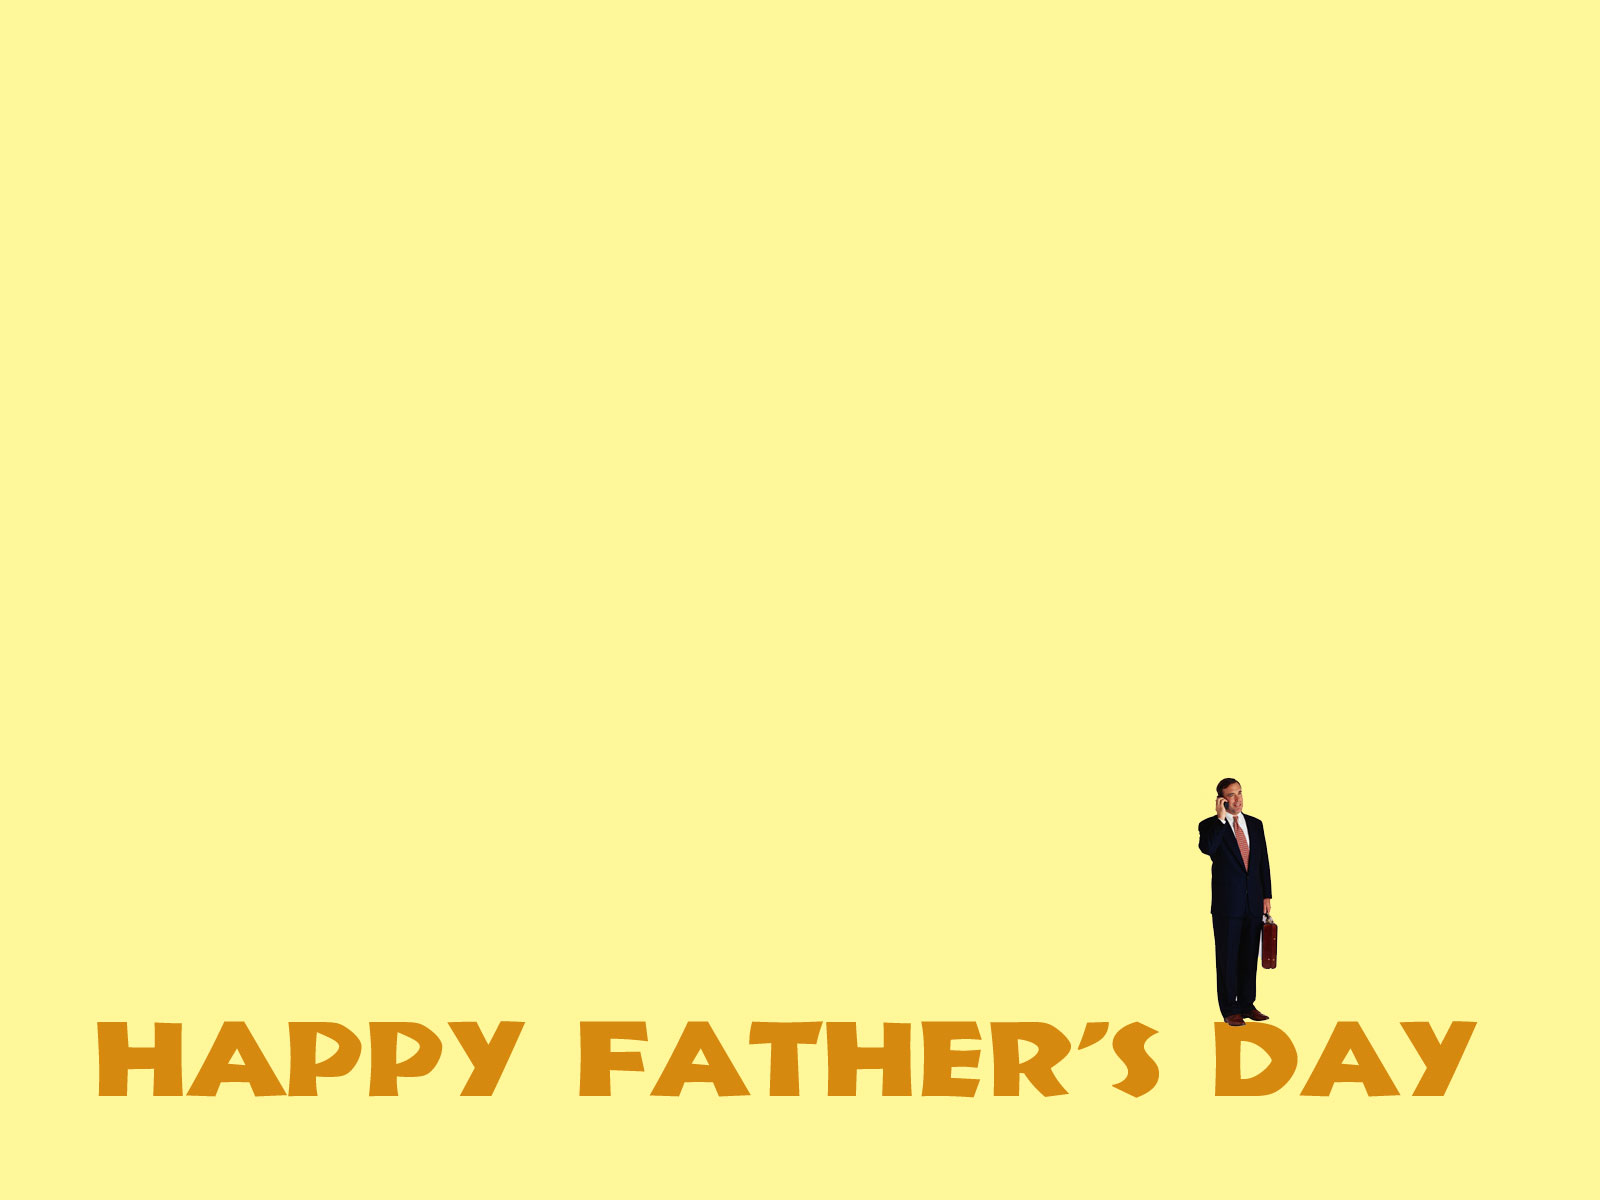 Fathers Day Background HD Images